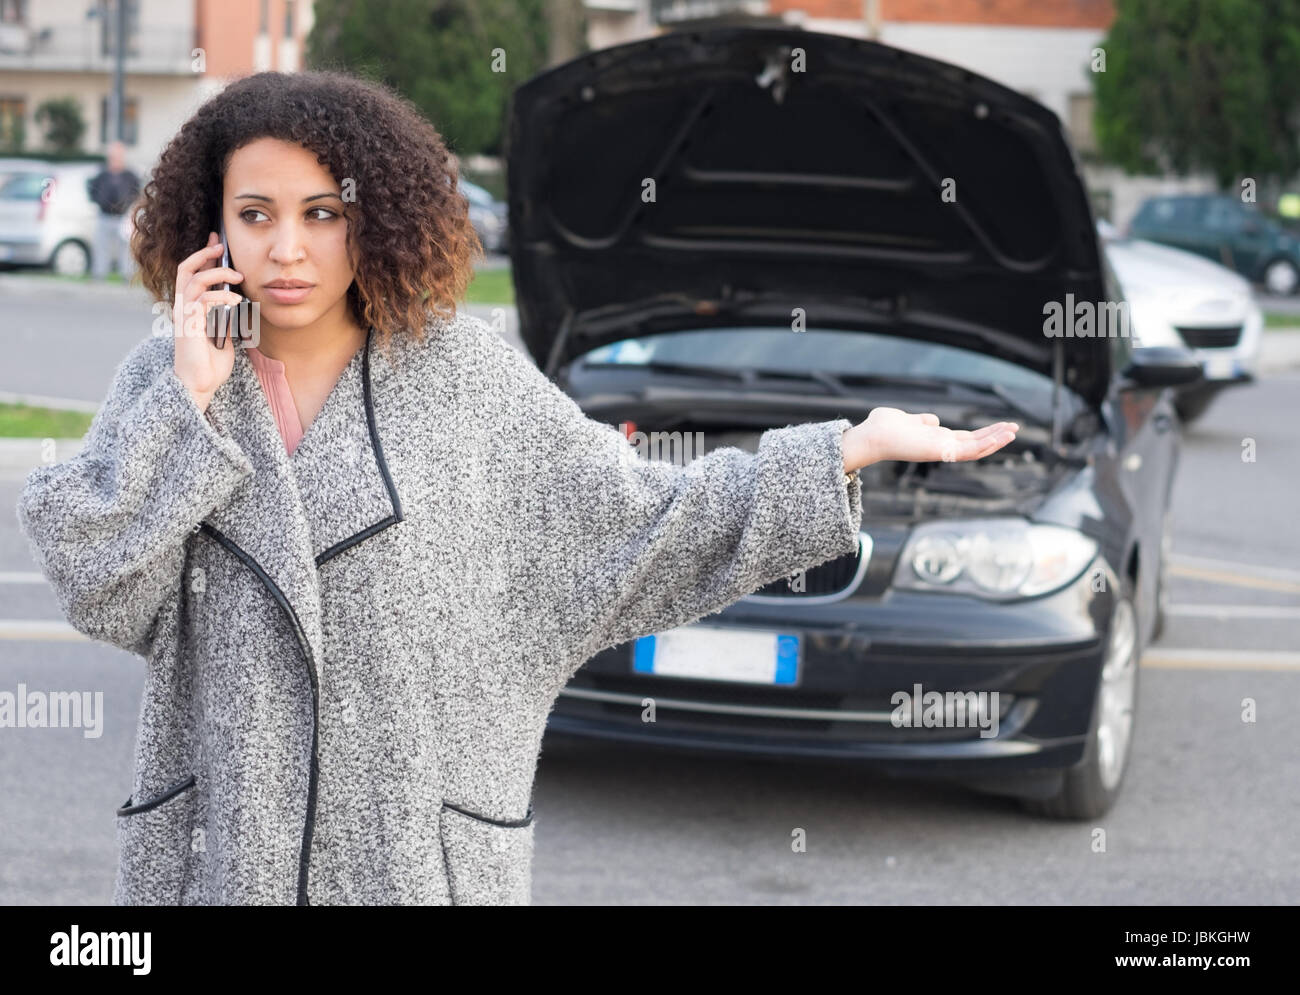 Desperate woman calling for emergency help after vehicle breakdown - Stock Image